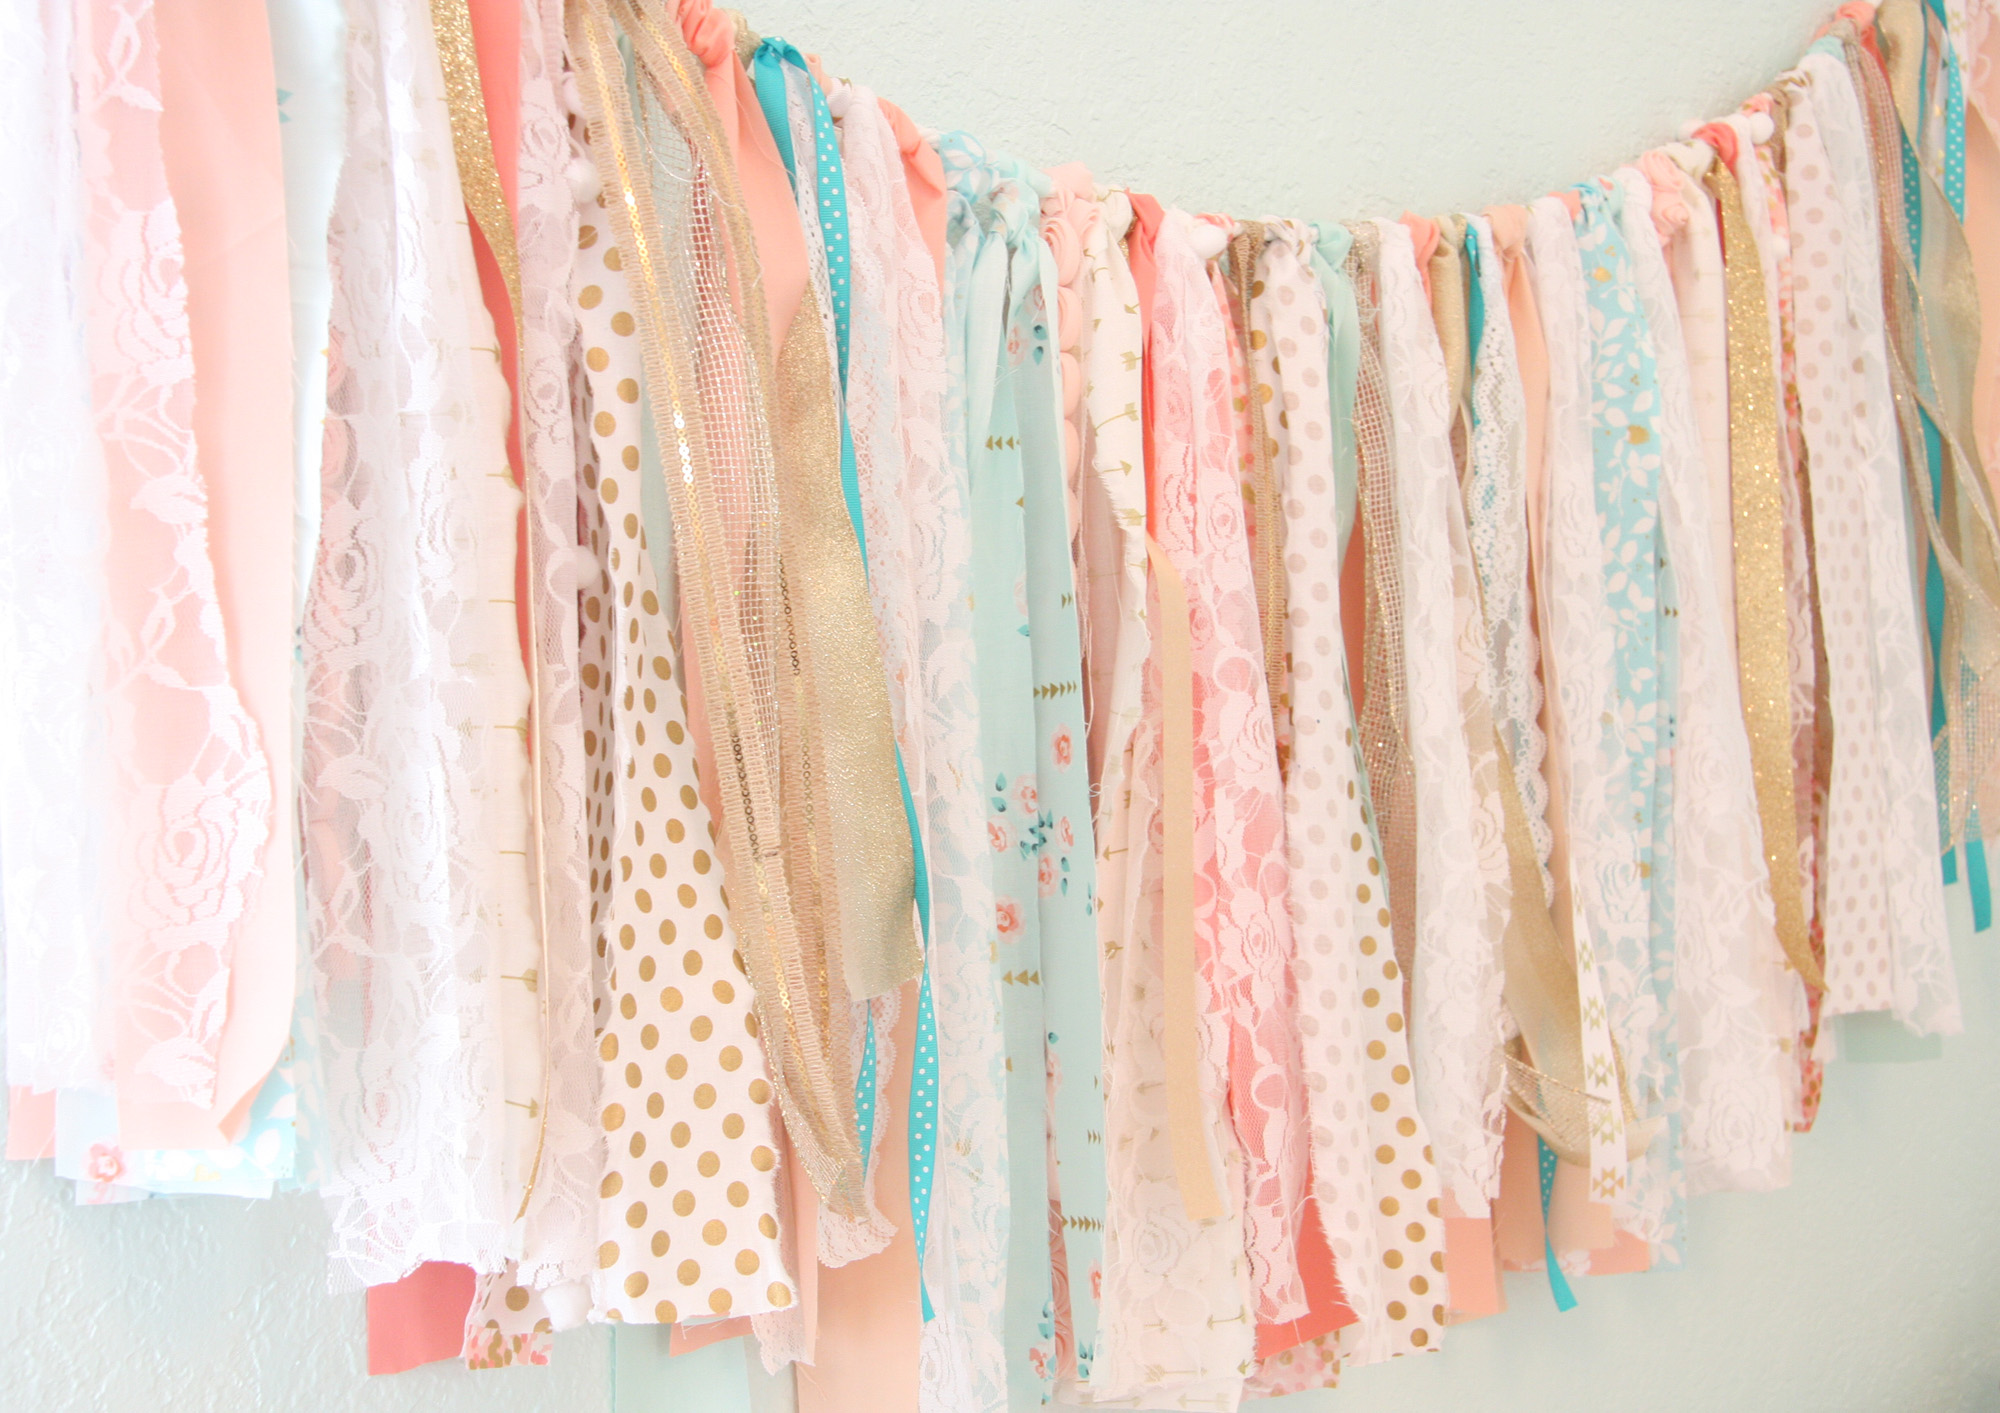 Fabric Garland - This is a perfect way to get rid of any excess crafting fabric you have around, or to pop by your local fabric shop and see if they have any excess material hanging around. Not only does this backdrop bring texture to your photographs, it looks great and is inexpensive to create. Check out this blog post for inspiration.Photo: Project Nursery